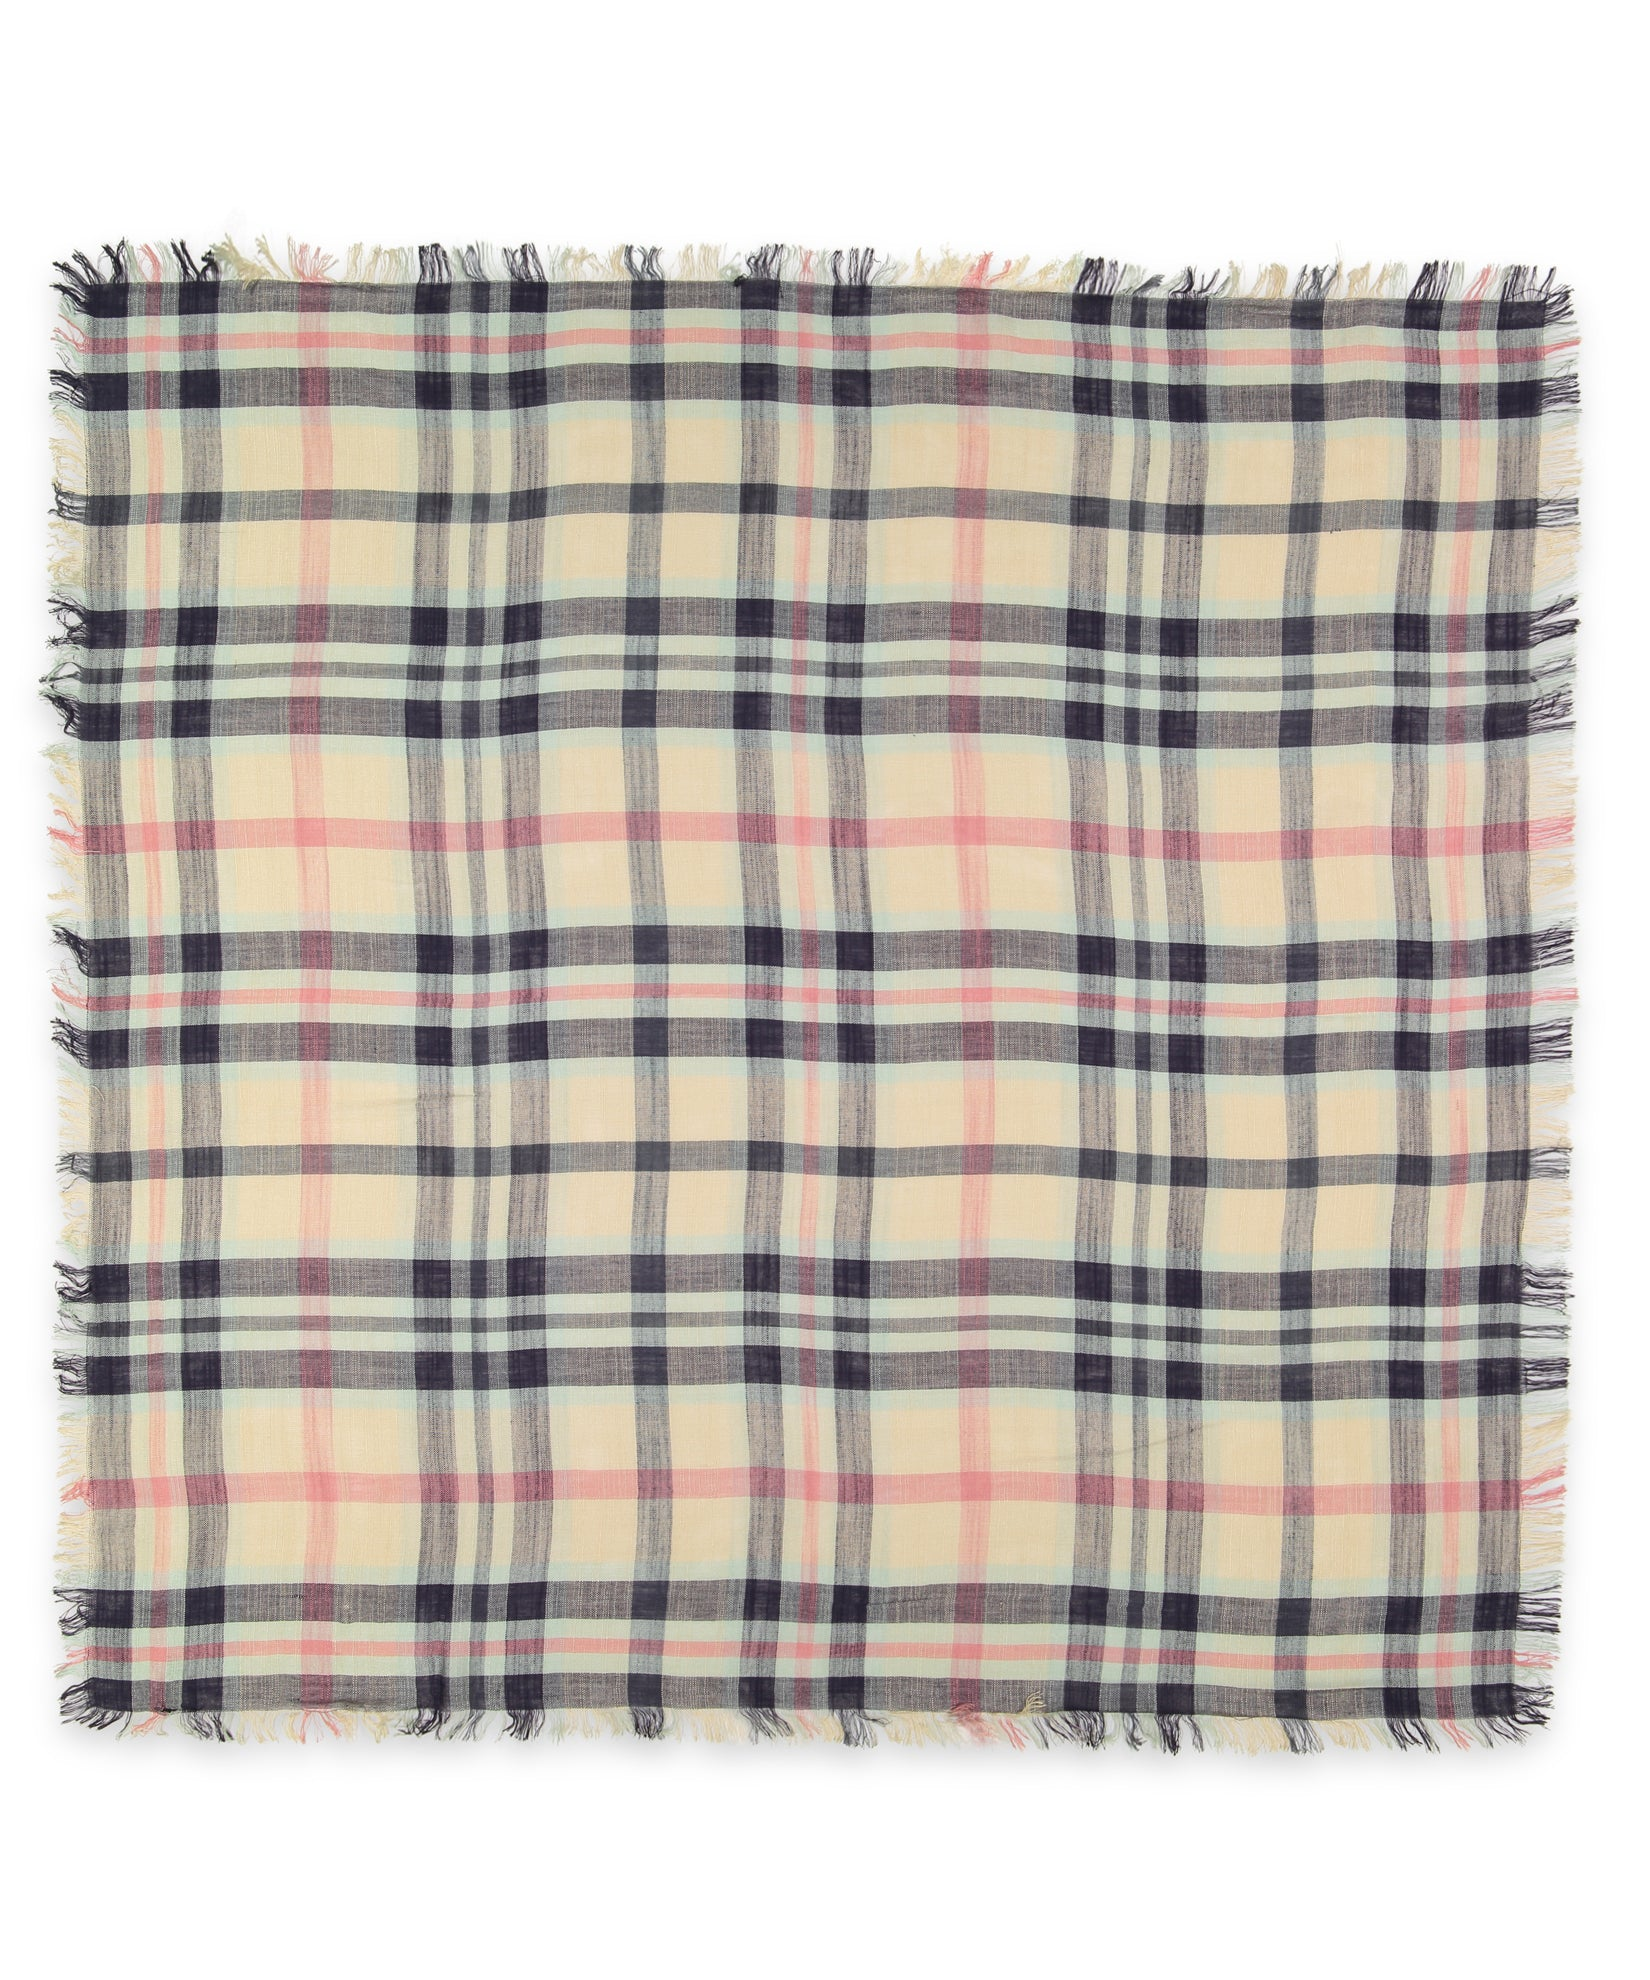 Chai - Goa Plaid Square